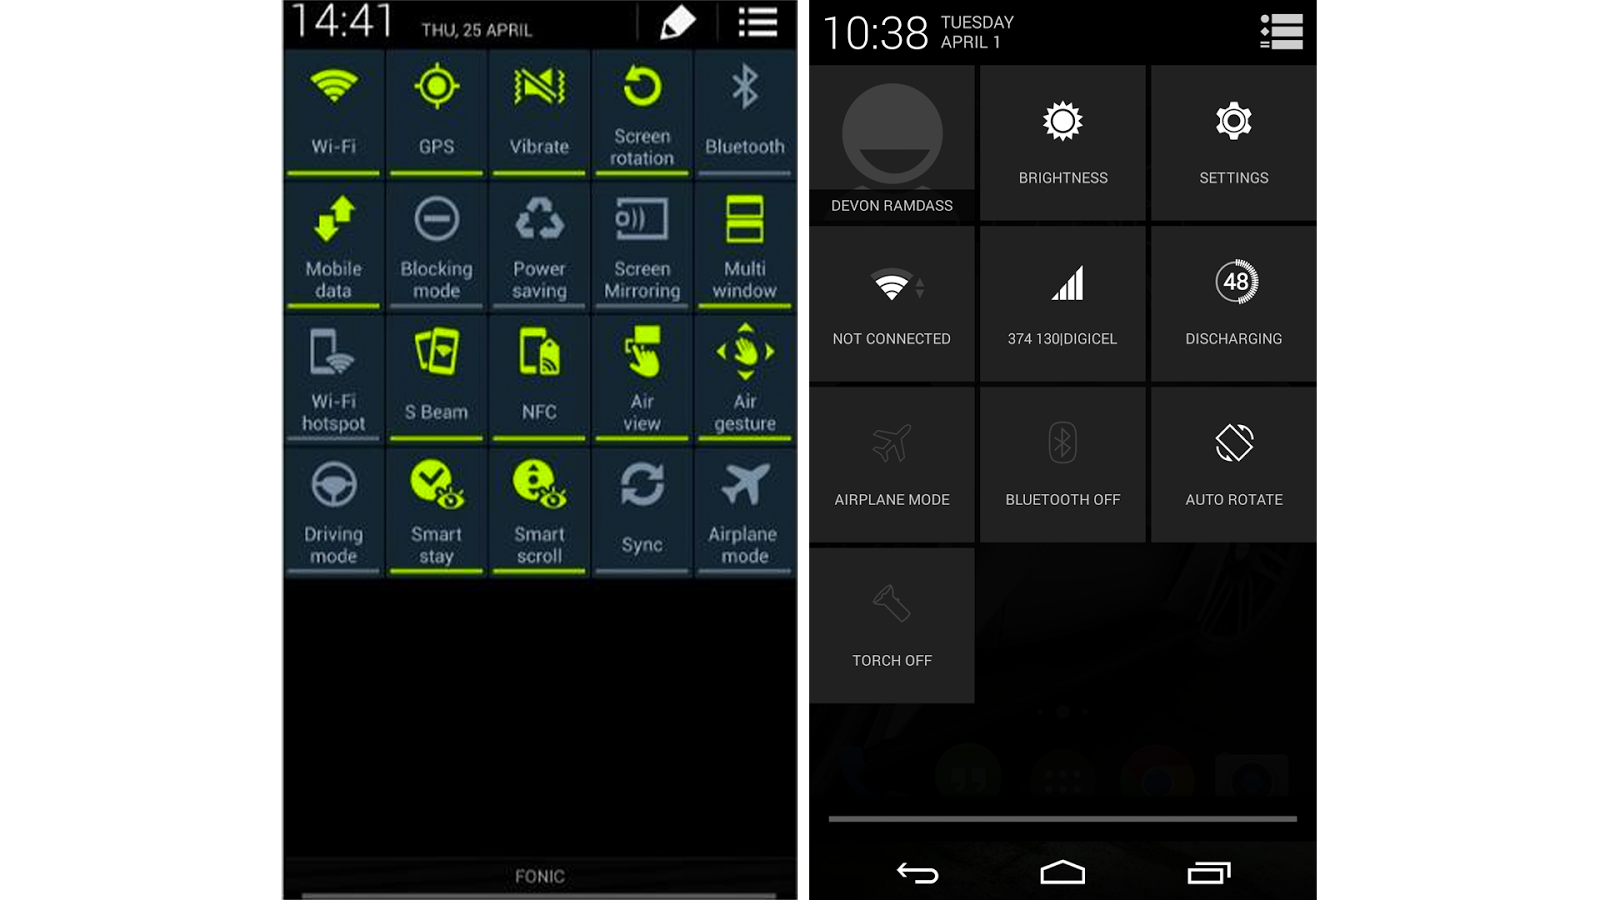 Touchwiz vs Pure Android